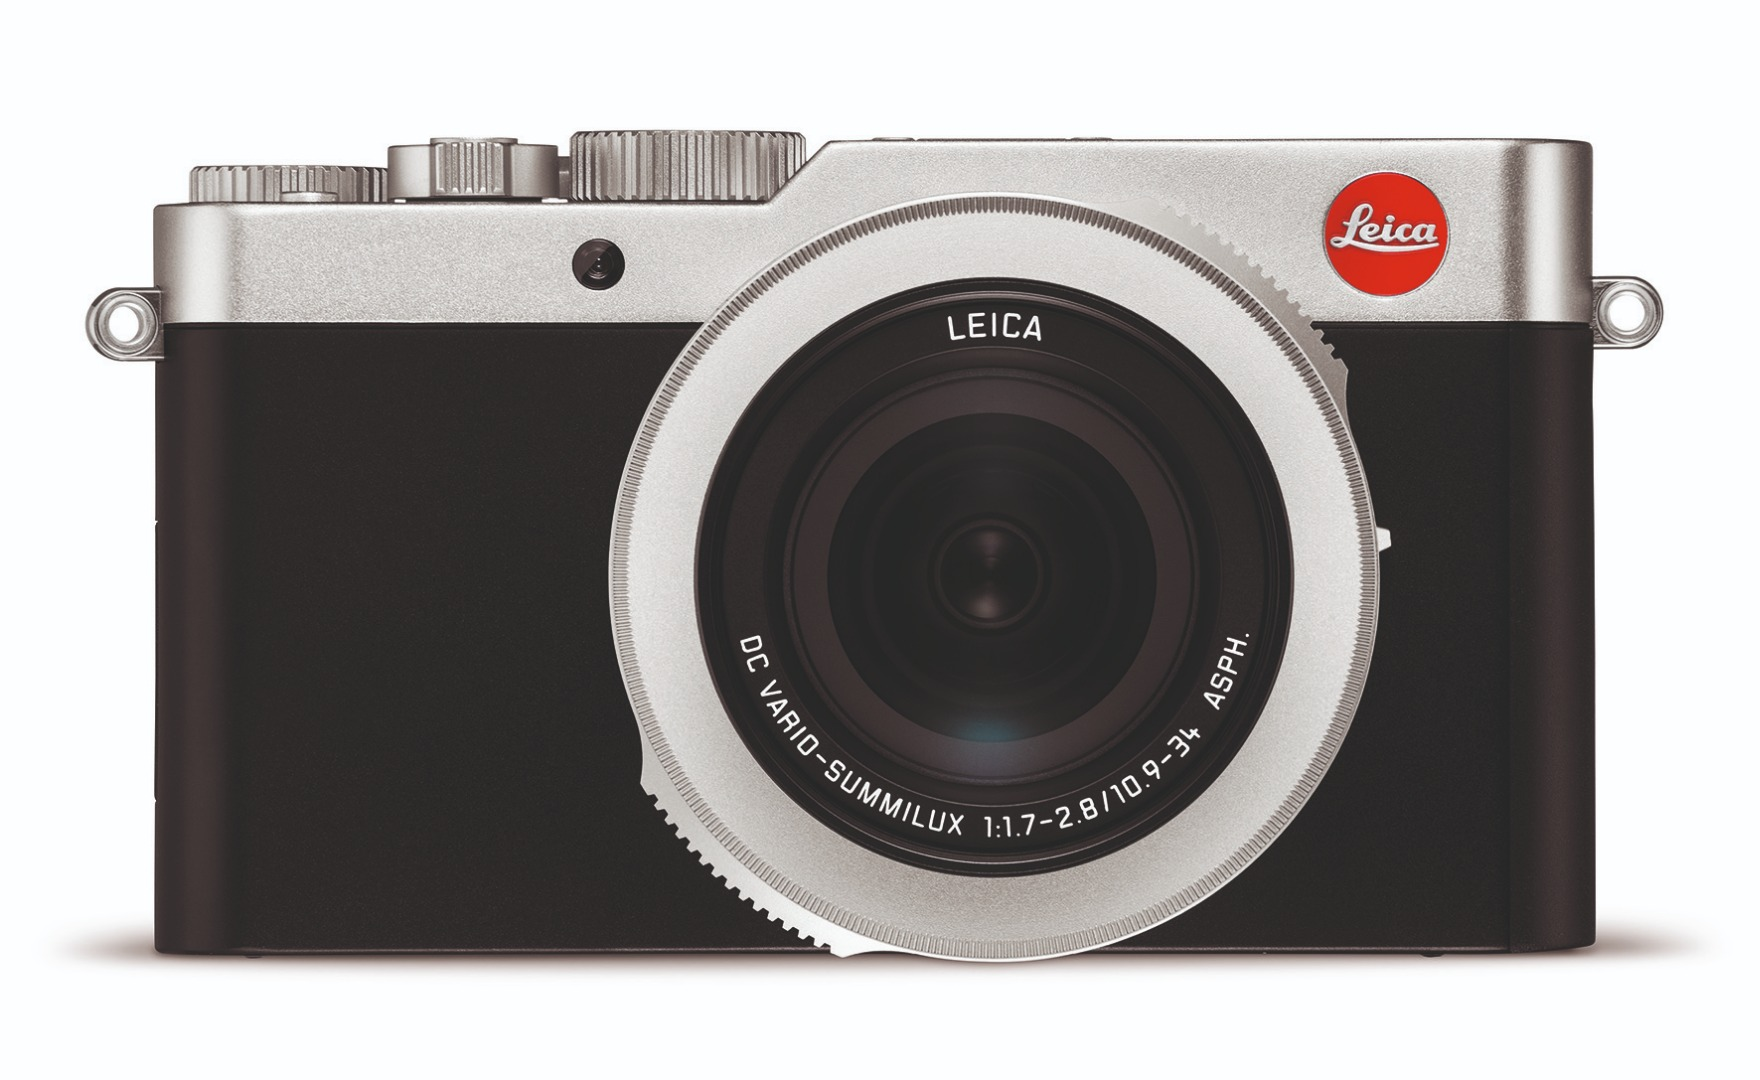 Leica aims for your pocket with D-Lux 7 compact